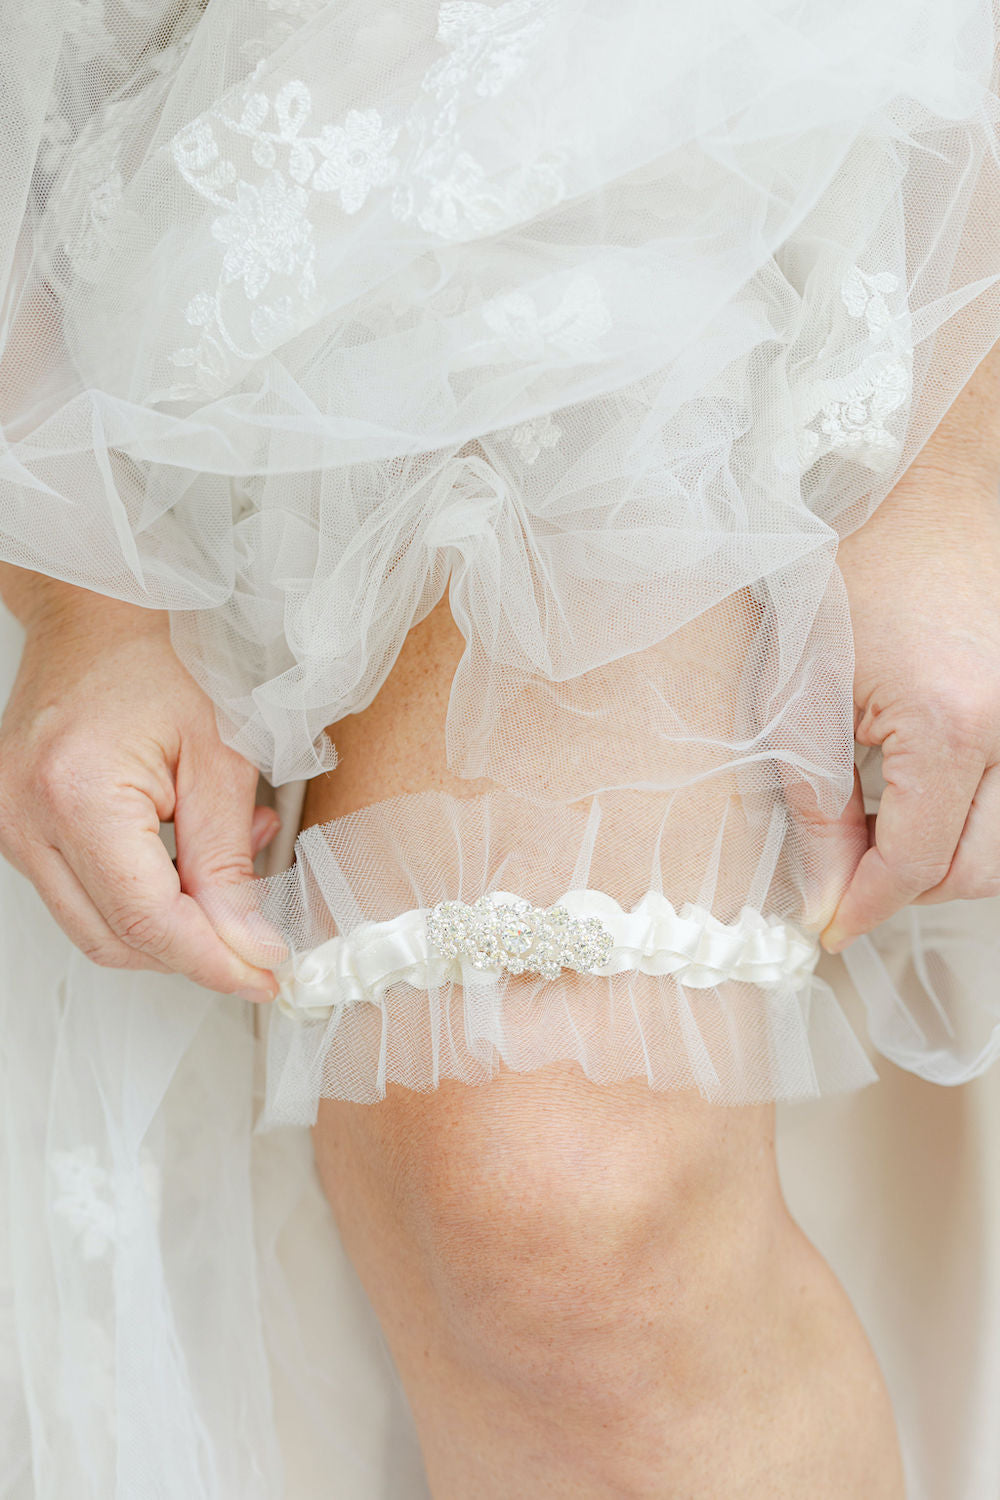 couture wedding garter heirloom with tulle and sparkle handmade by The Garter Girl